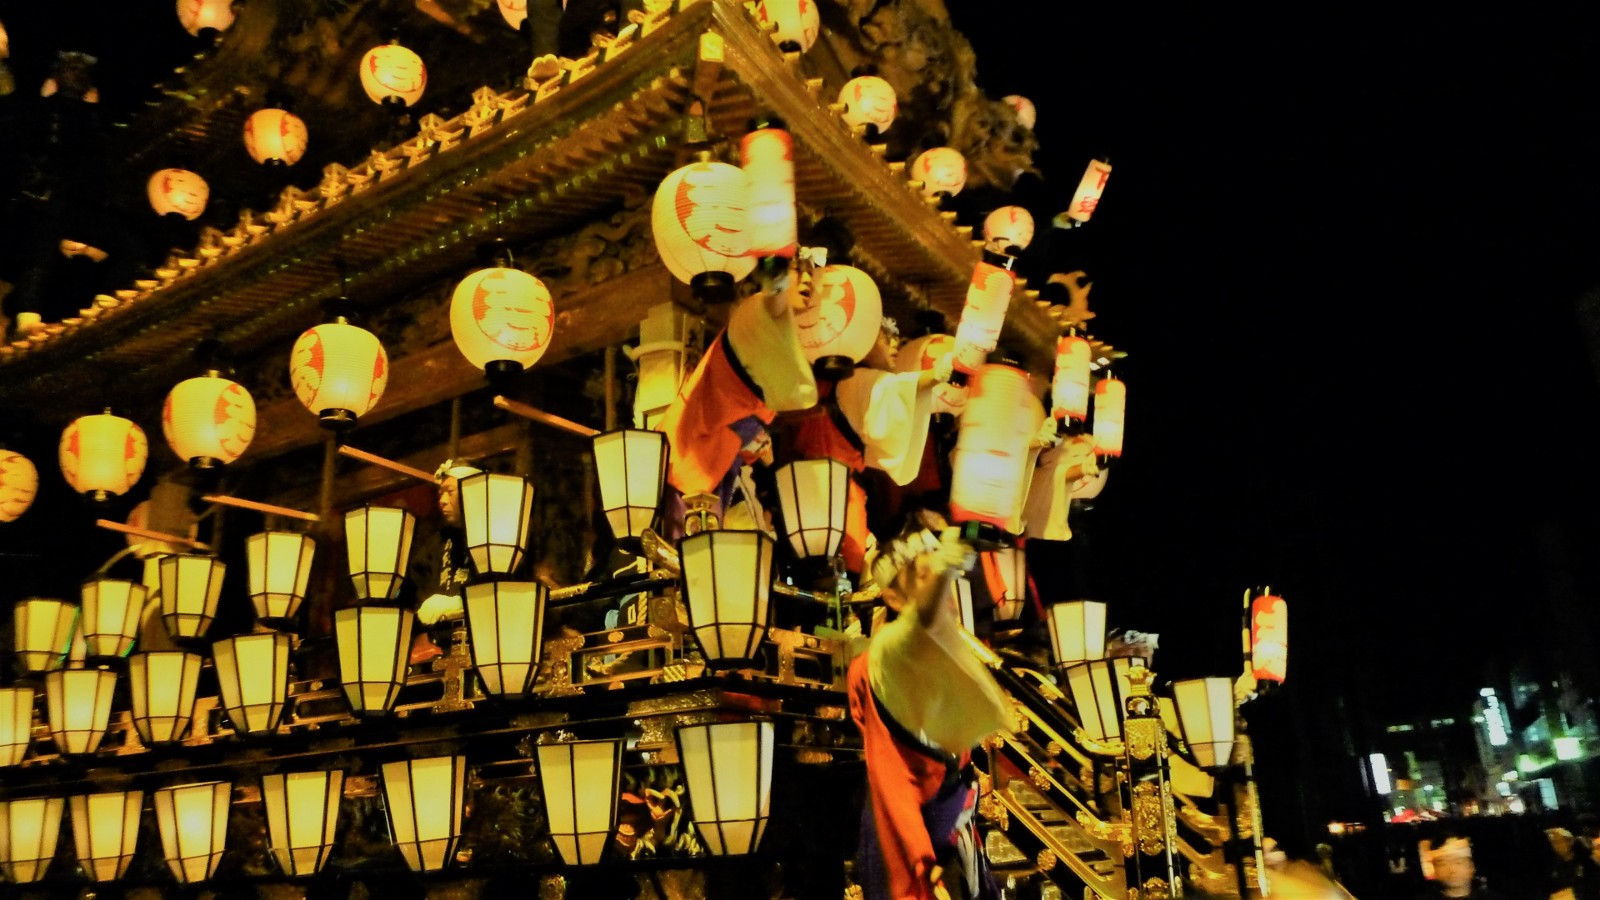 Chichibu Night Festival: Traditional Japanese festival in winter